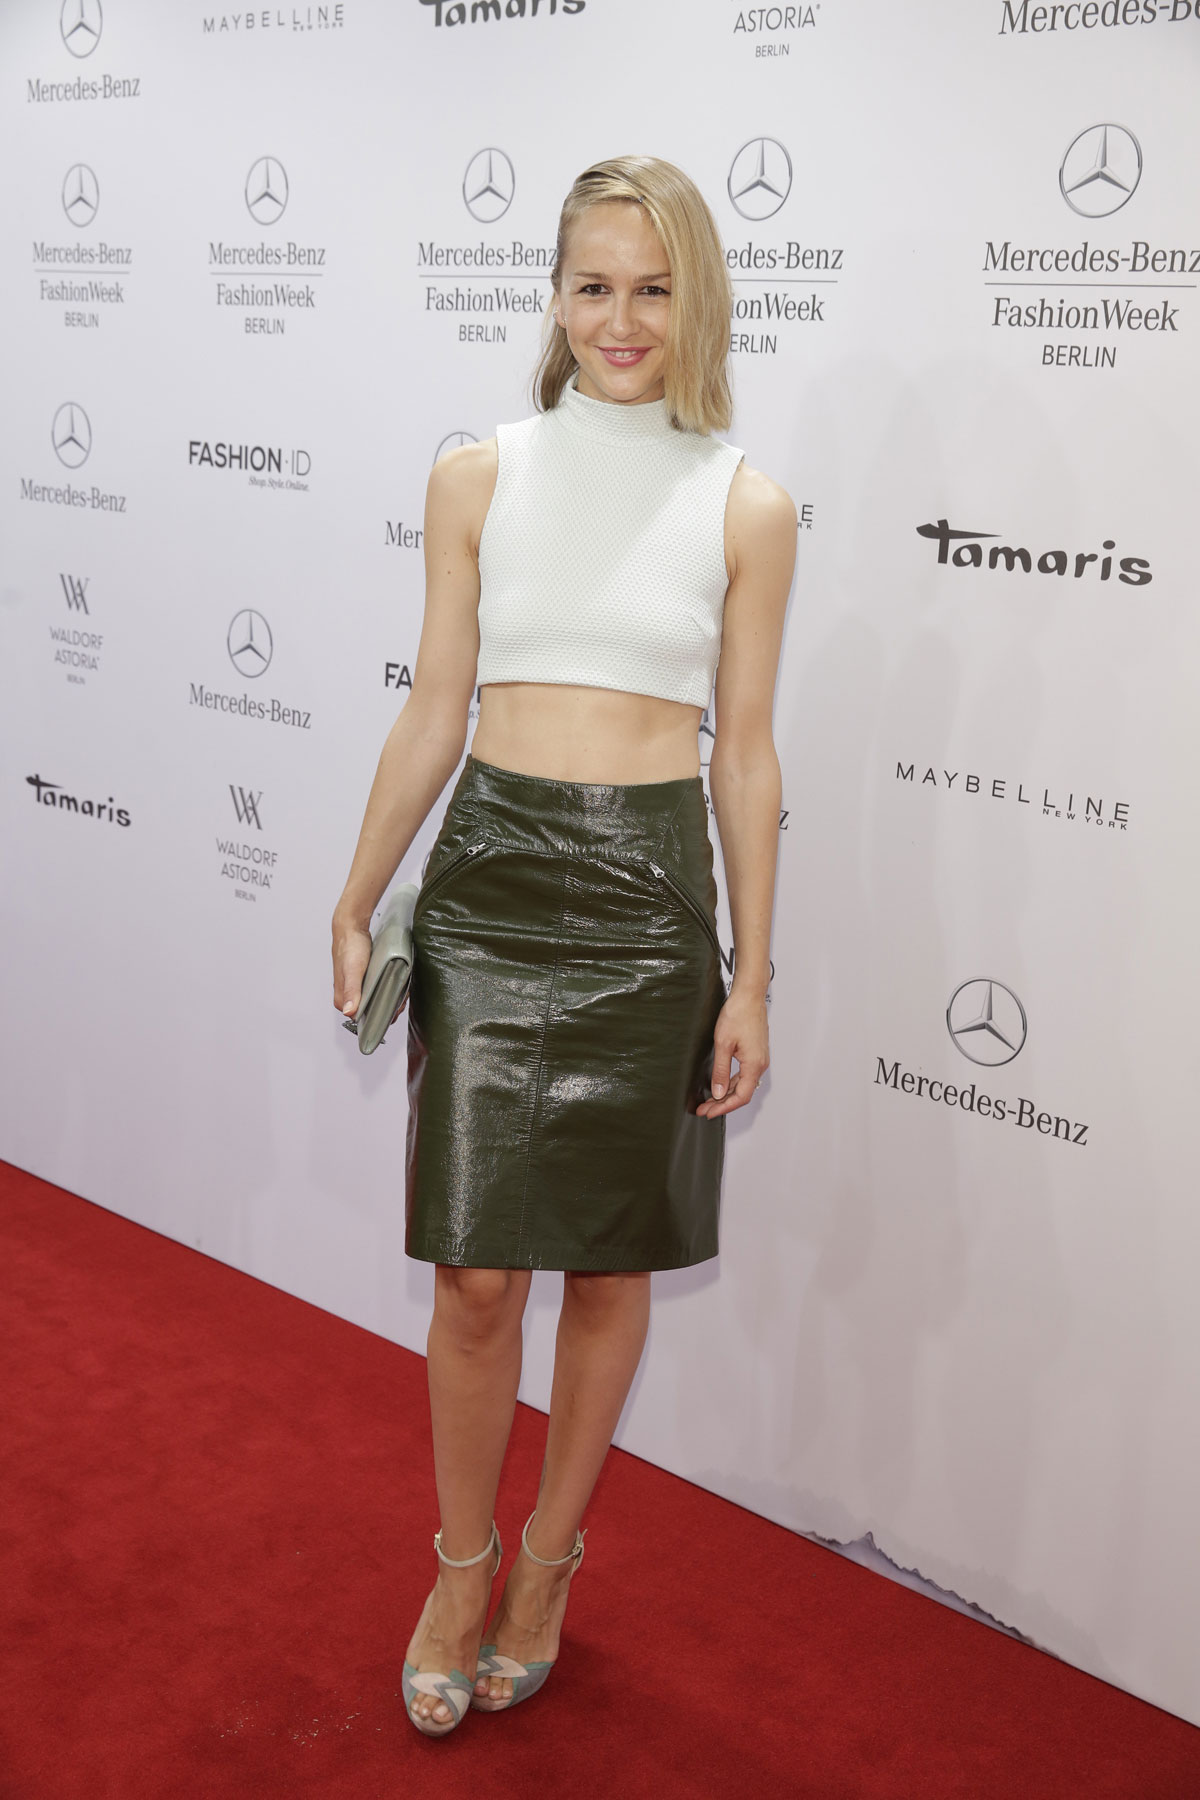 German celebs attend Mercedes-Benz Fashion Week Spring Summer 2015